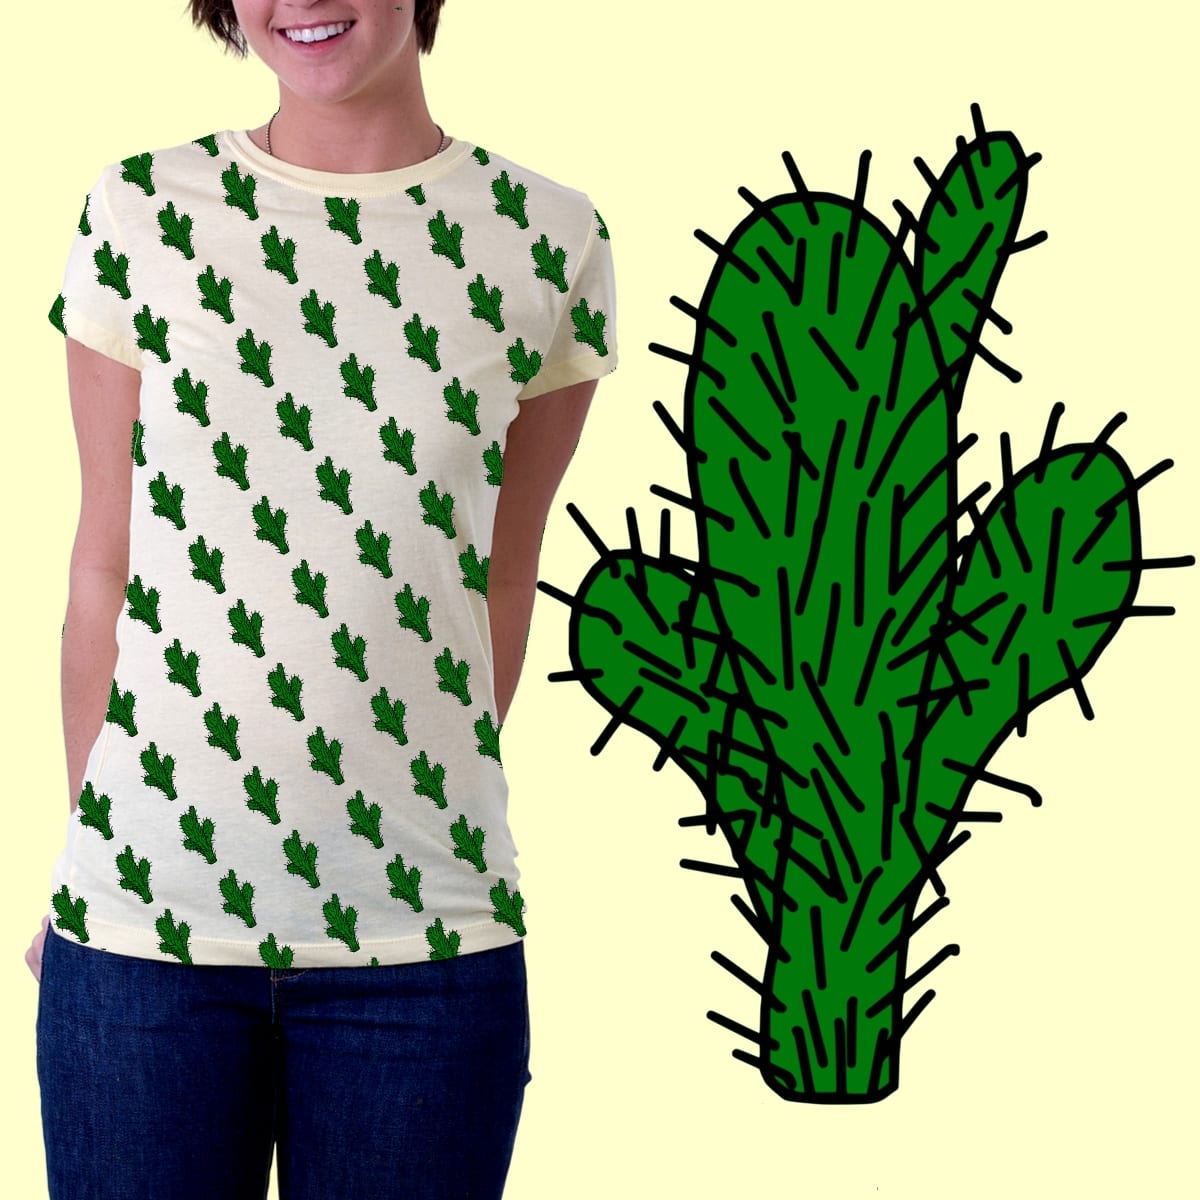 cactius one by gasponce on Threadless